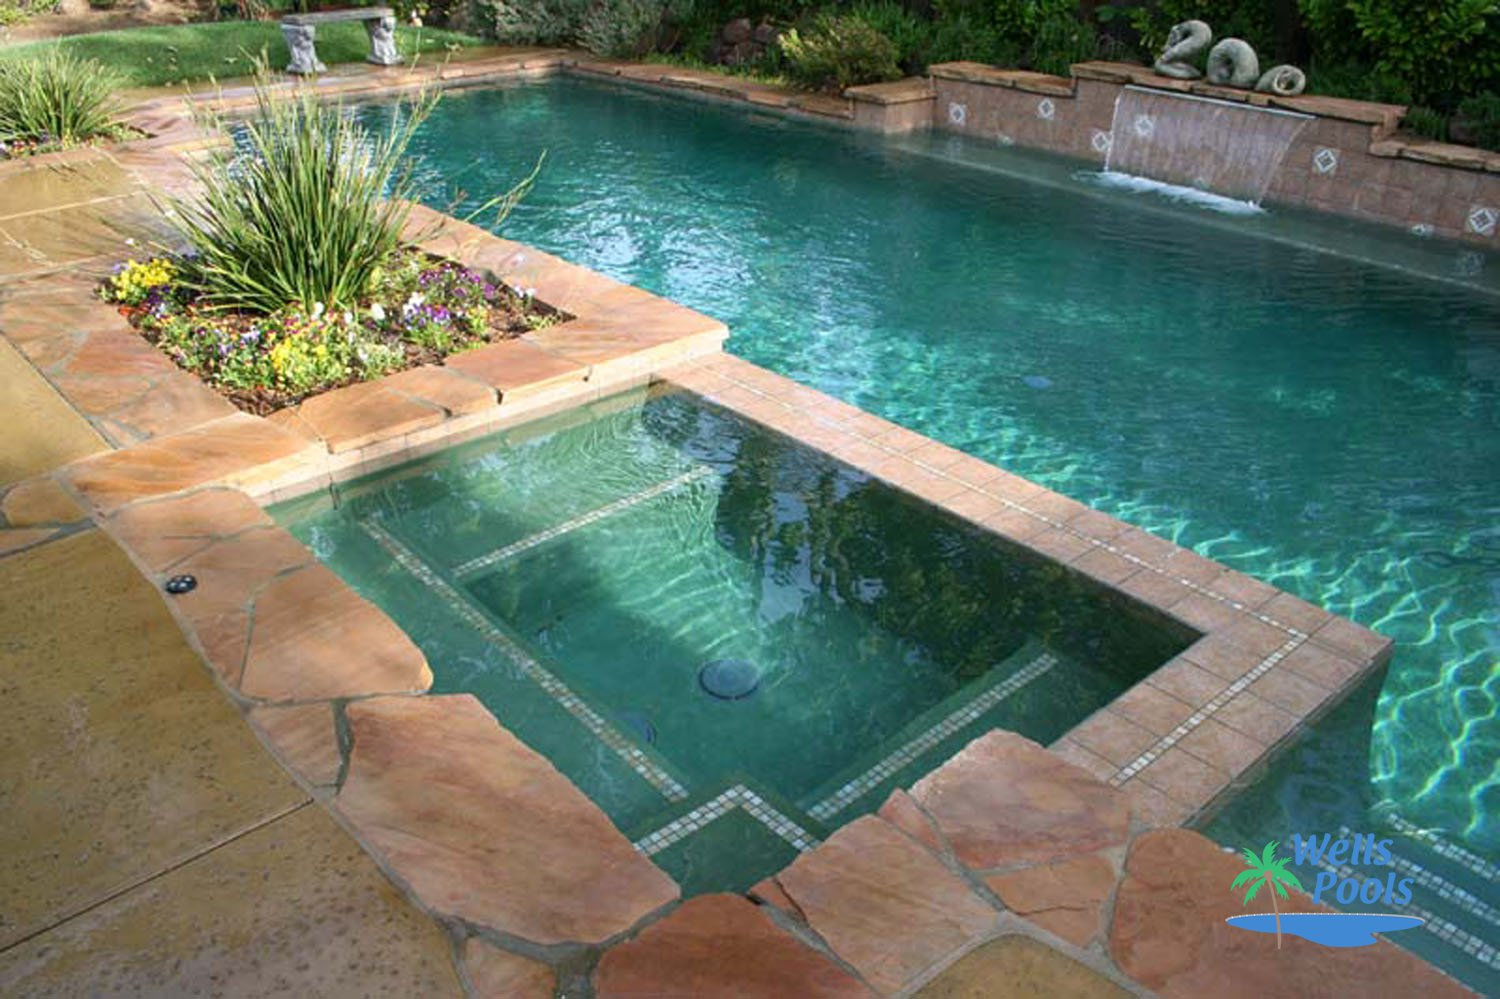 Jacuzzi Pool In Ground Inground Spas Construction Sacramento Folsom El Dorado Hills